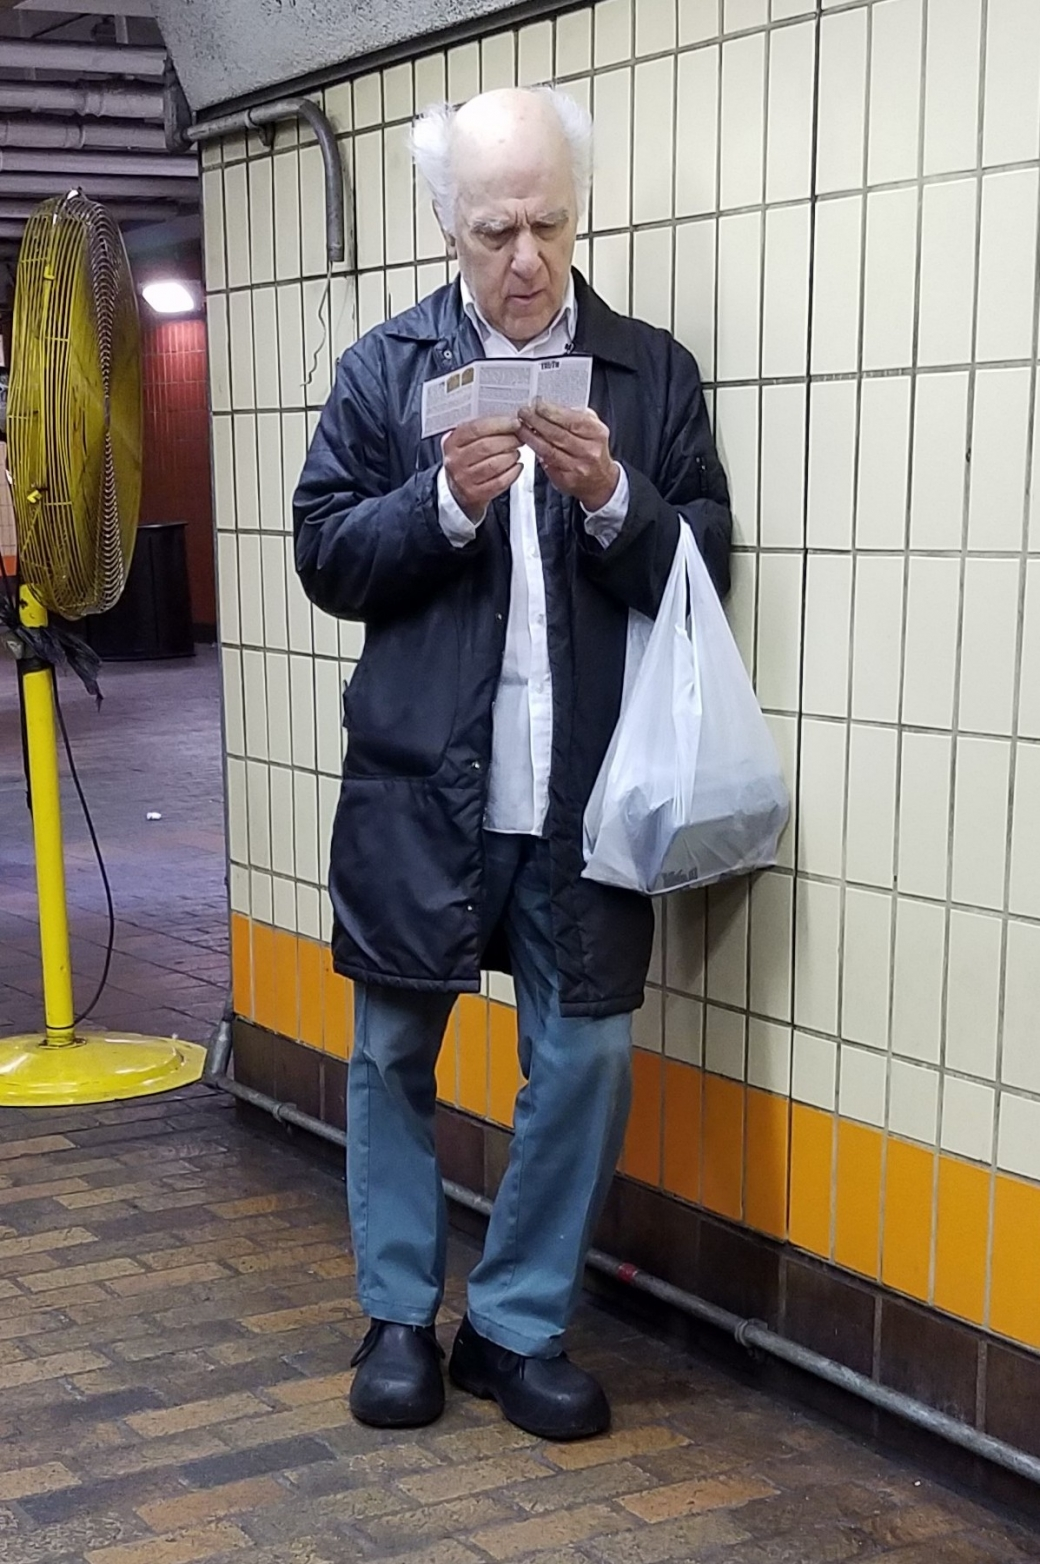 This gentleman was reading the tract with a lot of focus. I tried to start up a conversation with him, but sadly he wasn't interested in that. But at least he read the gospel booklet!